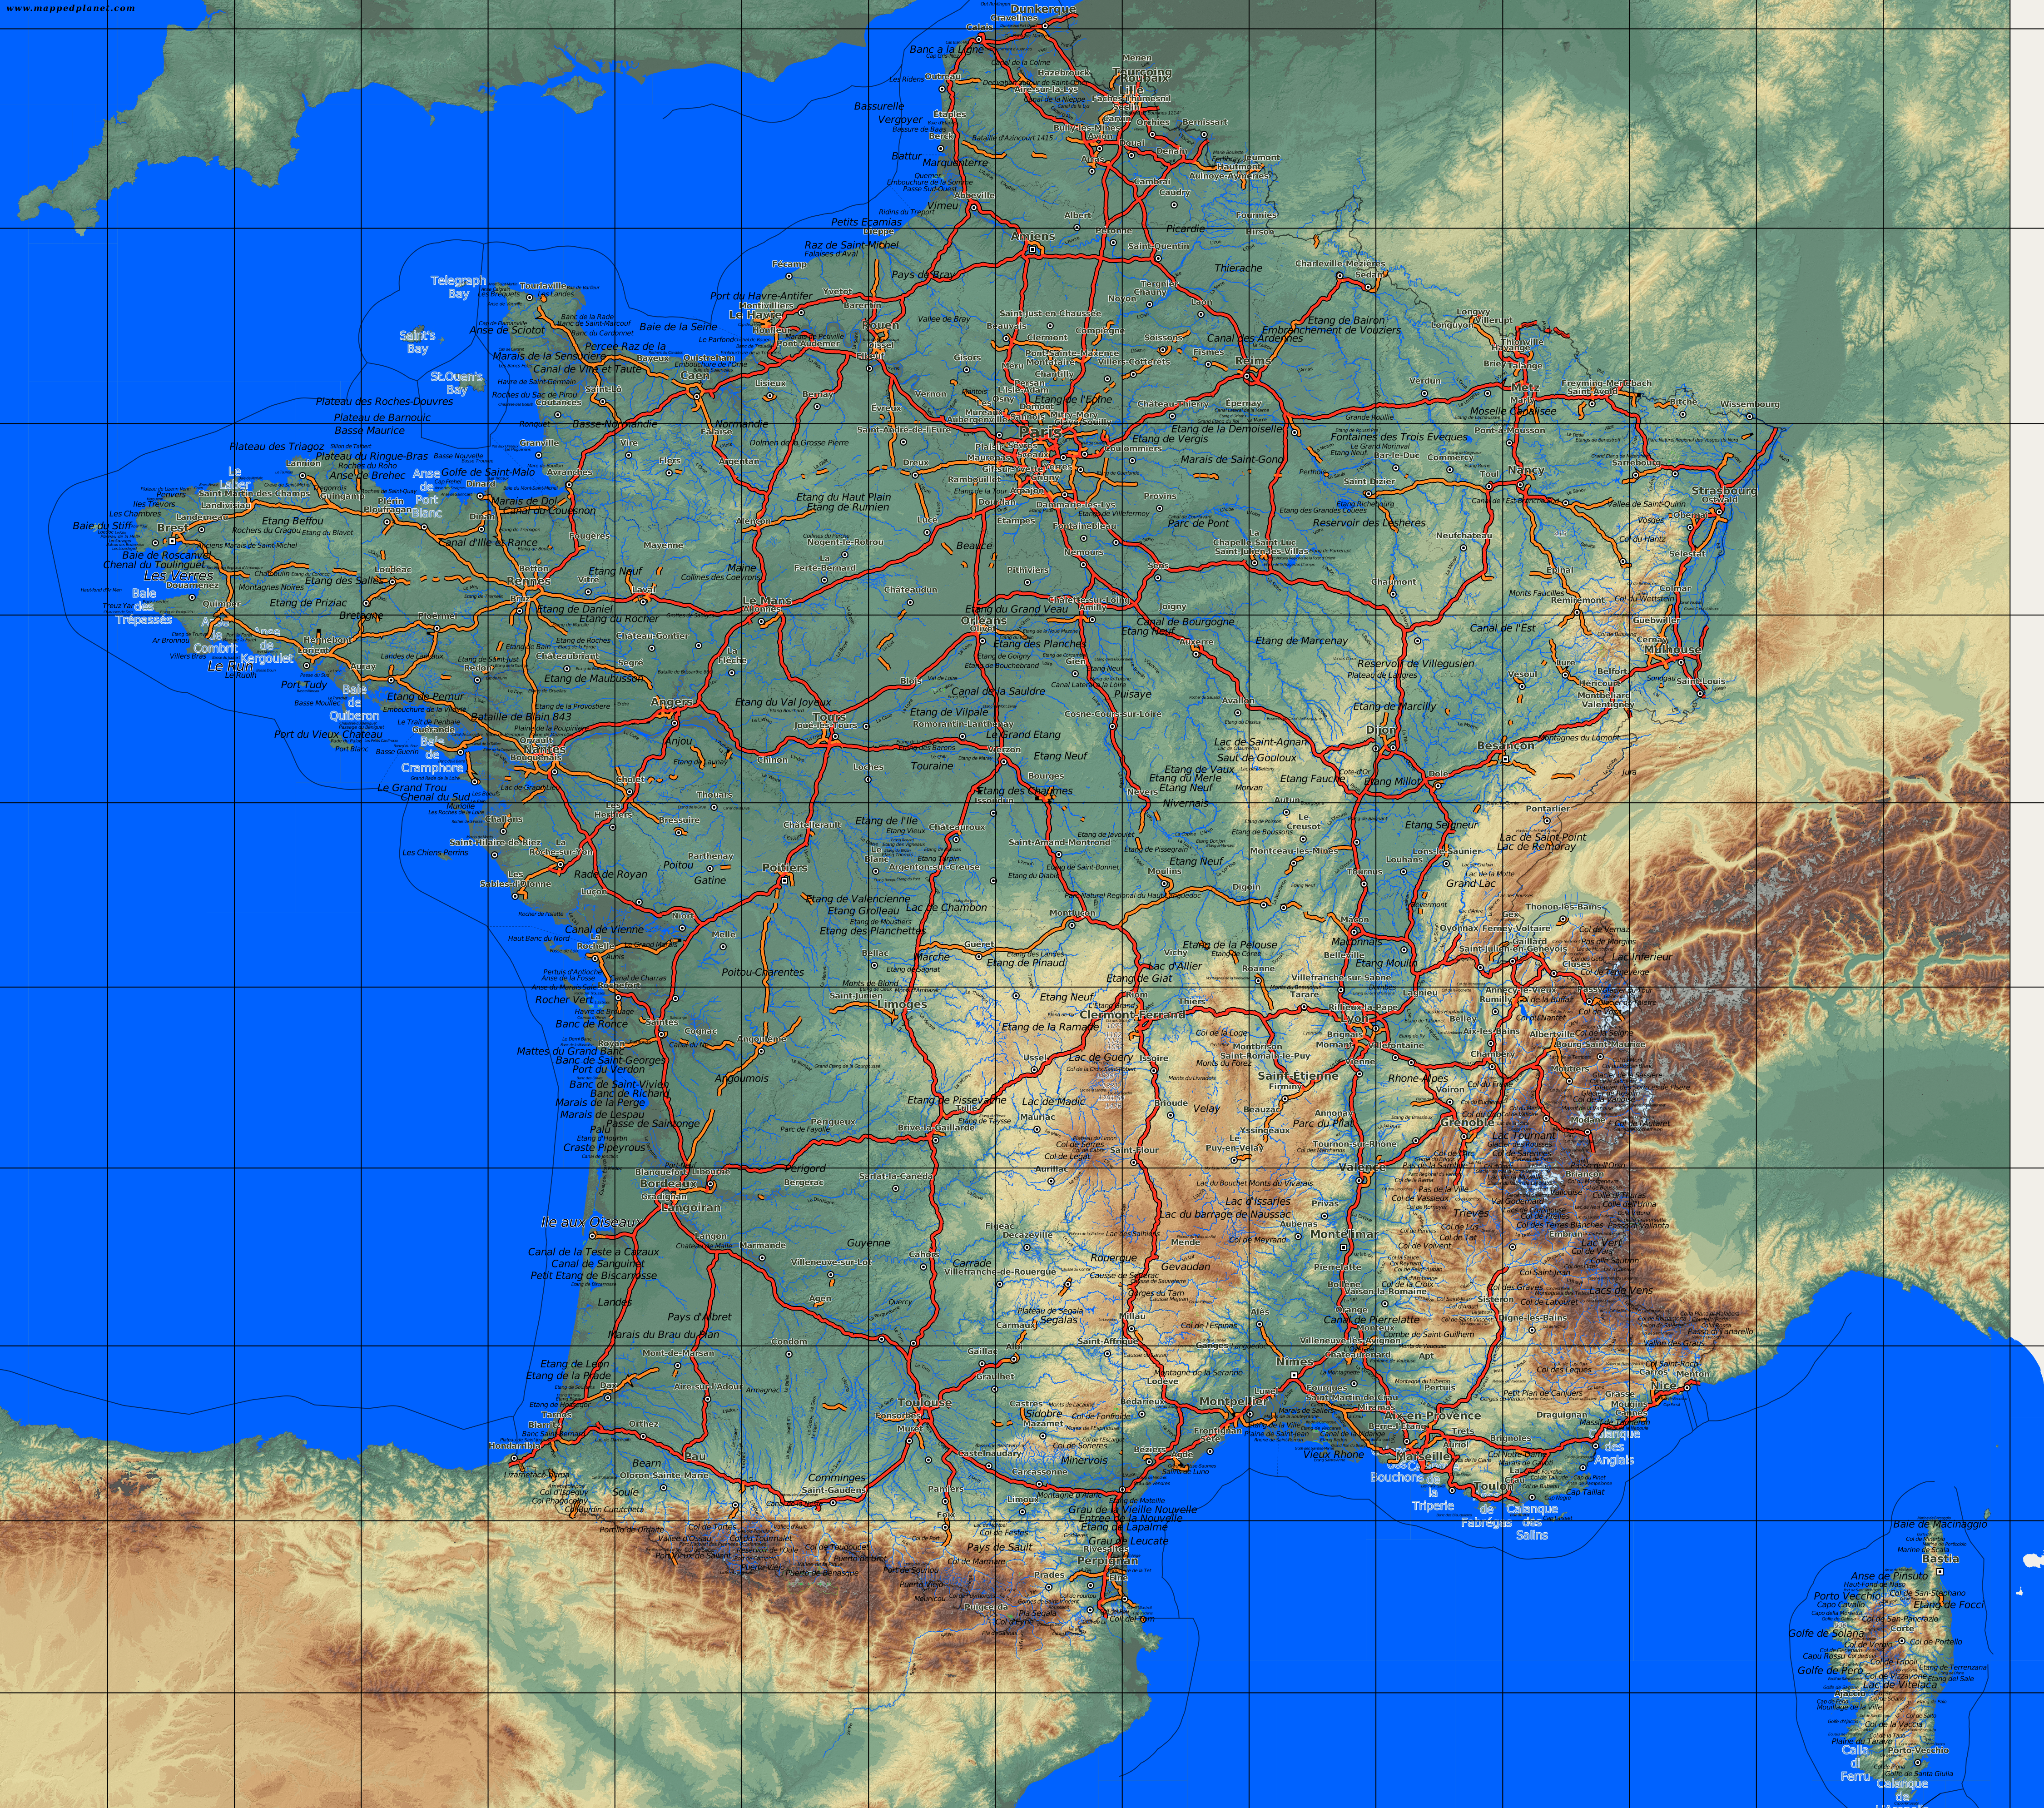 Map Of Southern France Cities.South Of France Cities Map